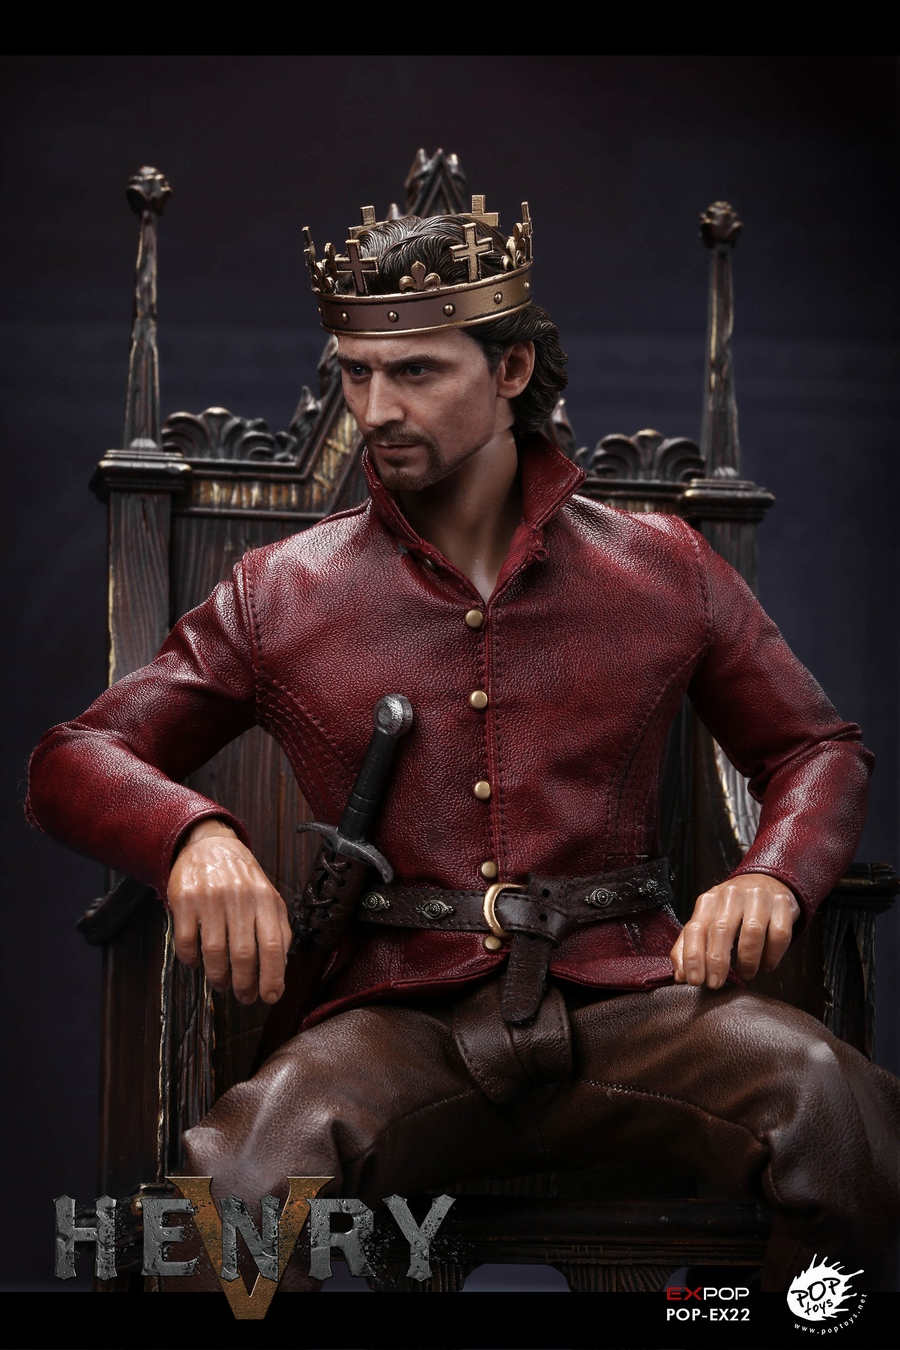 NEW PRODUCT: POPTOYS [WF2019 Shanghai Conference Edition]: 1/6 King of England - Henry V [The Throne Edition] POP-EX22 17592111